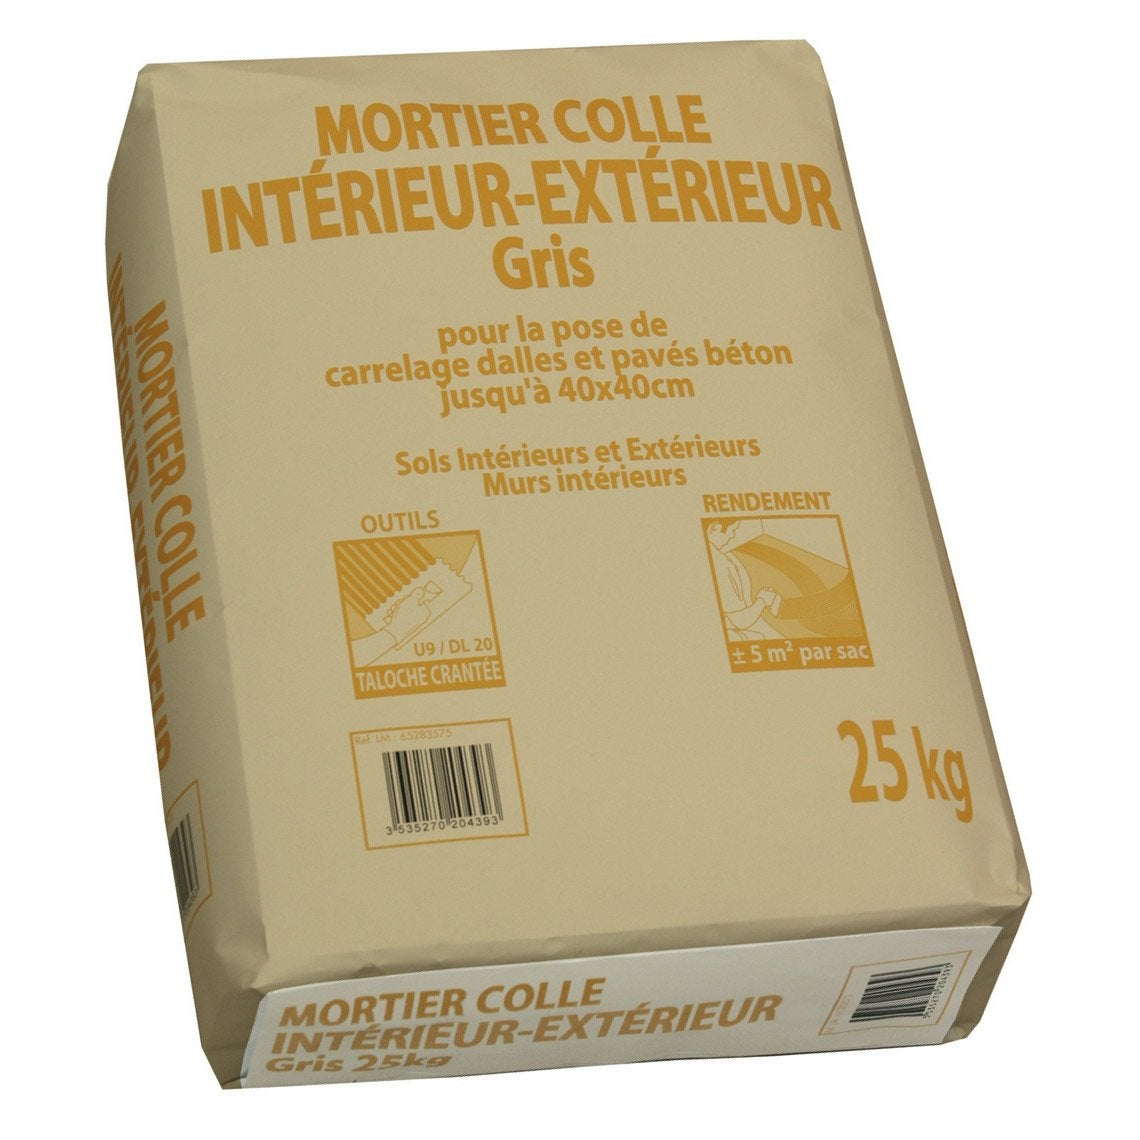 Colle pour carrelage int rieur ext rieur gris prb 25kg for Ciment colle pour carrelage piscine